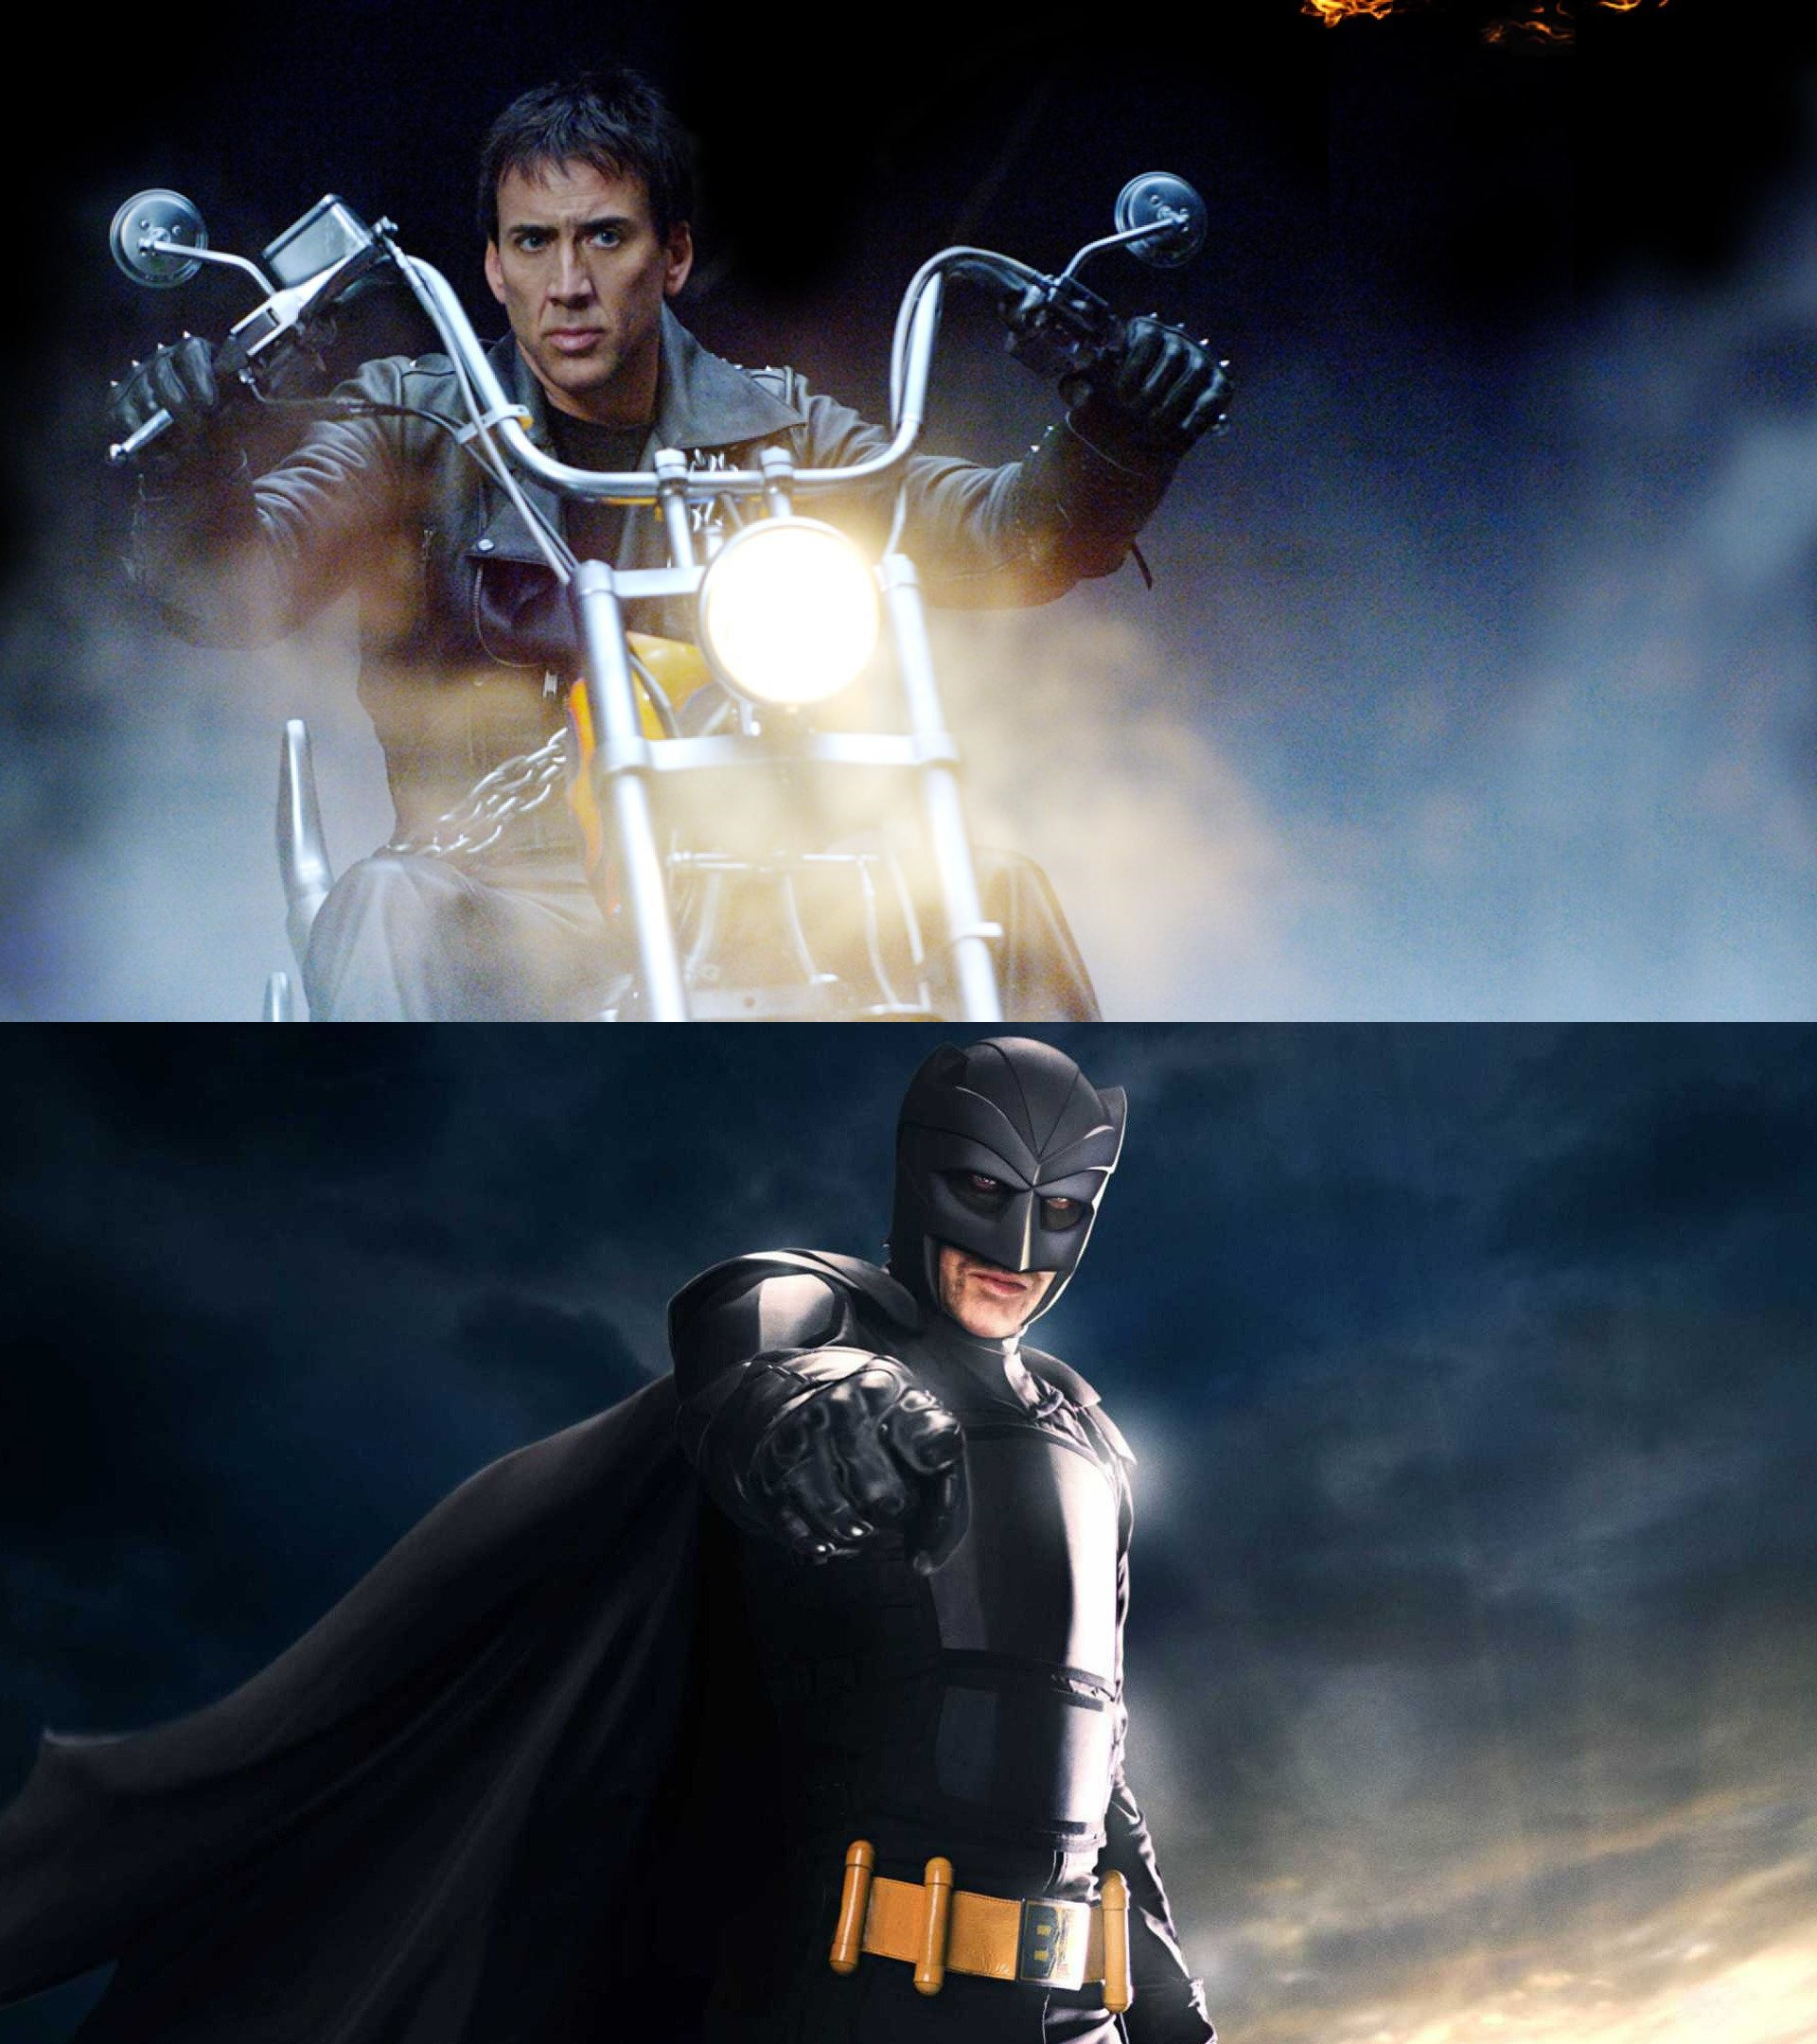 Nicolas Cage as Ghost Rider and Big Daddy - Actors who have played more than one superhero